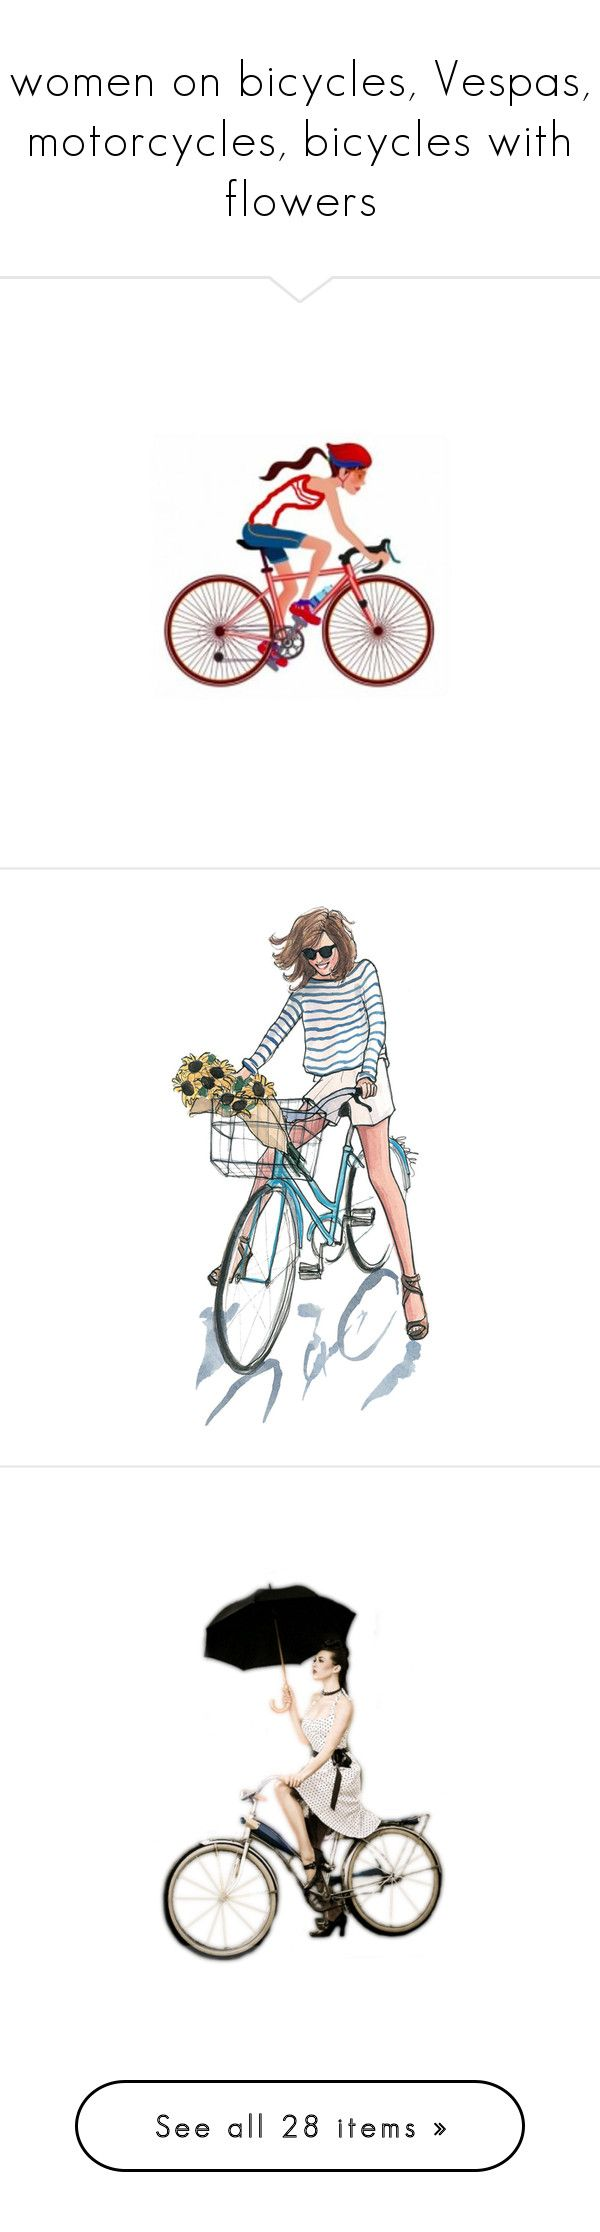 """""""women on bicycles, Vespas, motorcycles, bicycles with flowers"""" by leaff88 ❤ liked on Polyvore featuring sketches, drawings, fillers, art, people, backgrounds, doodles, embellish, quotes and scribble"""